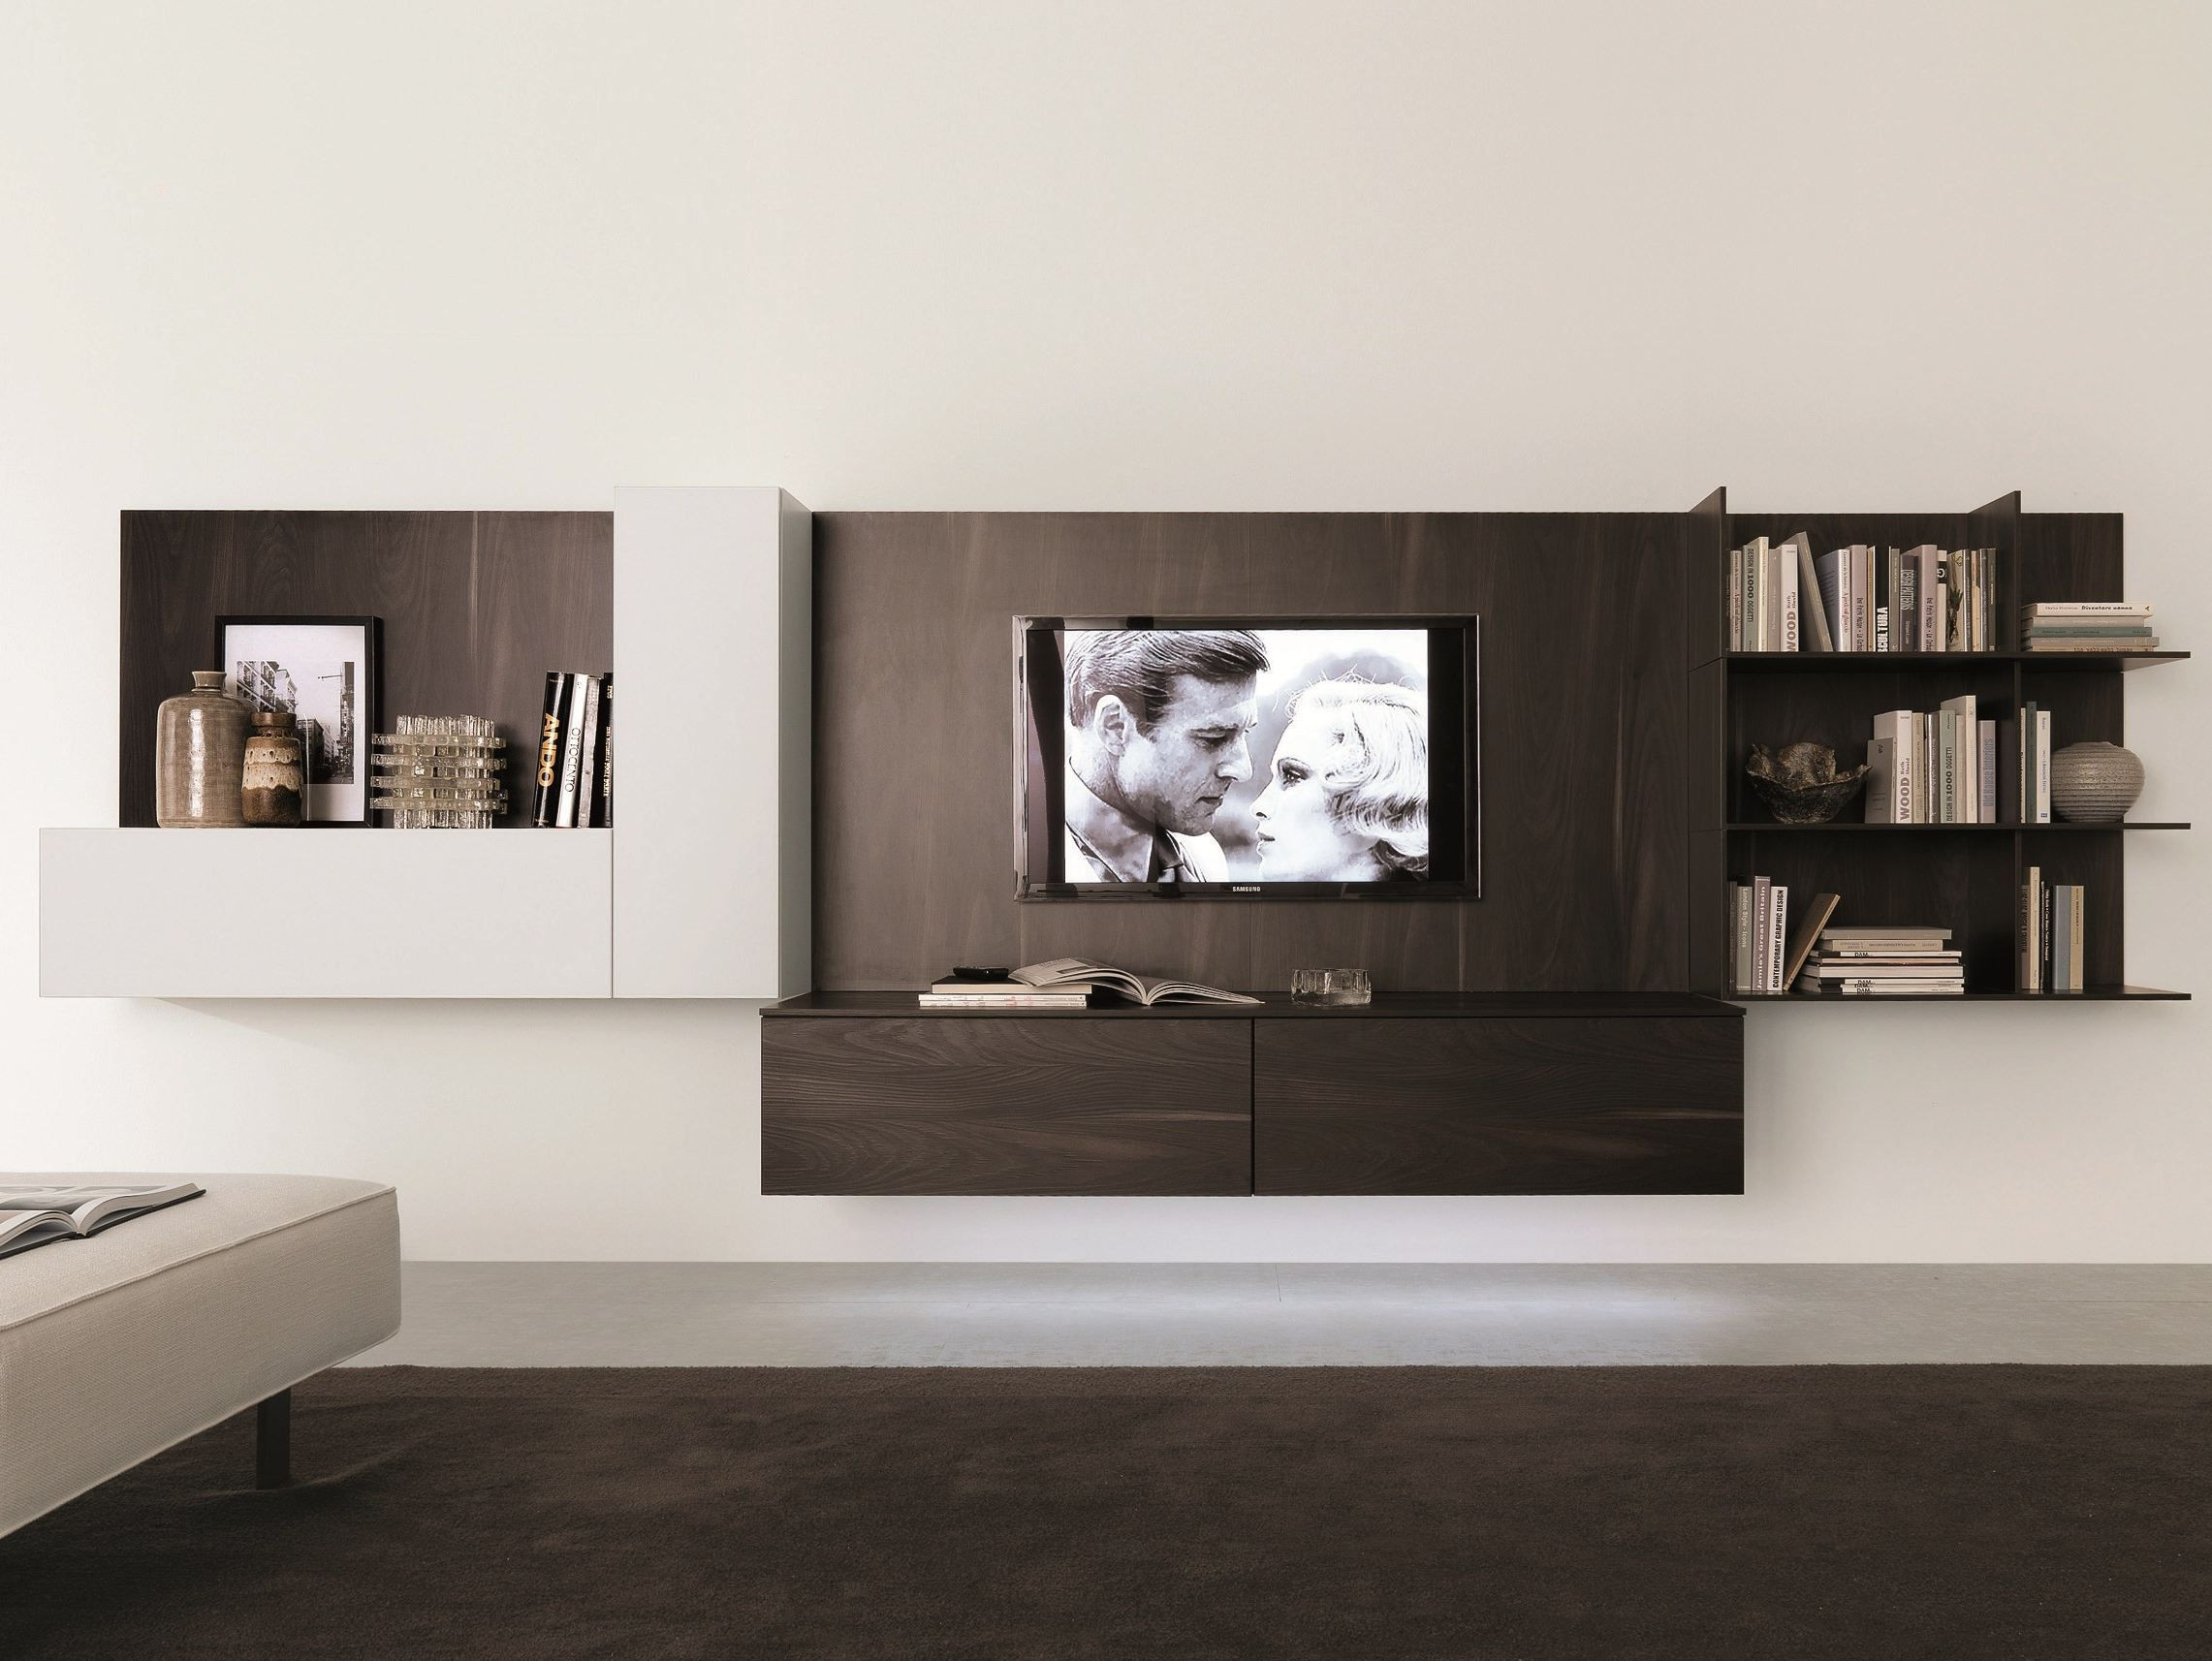 Muebles Para Tv Modernos Gran Muebles Modernos Para Tv Y Equipo De sonido Of Muebles Para Tv Modernos Magnífica 25 Best Ideas About Lcd Wall Design On Pinterest